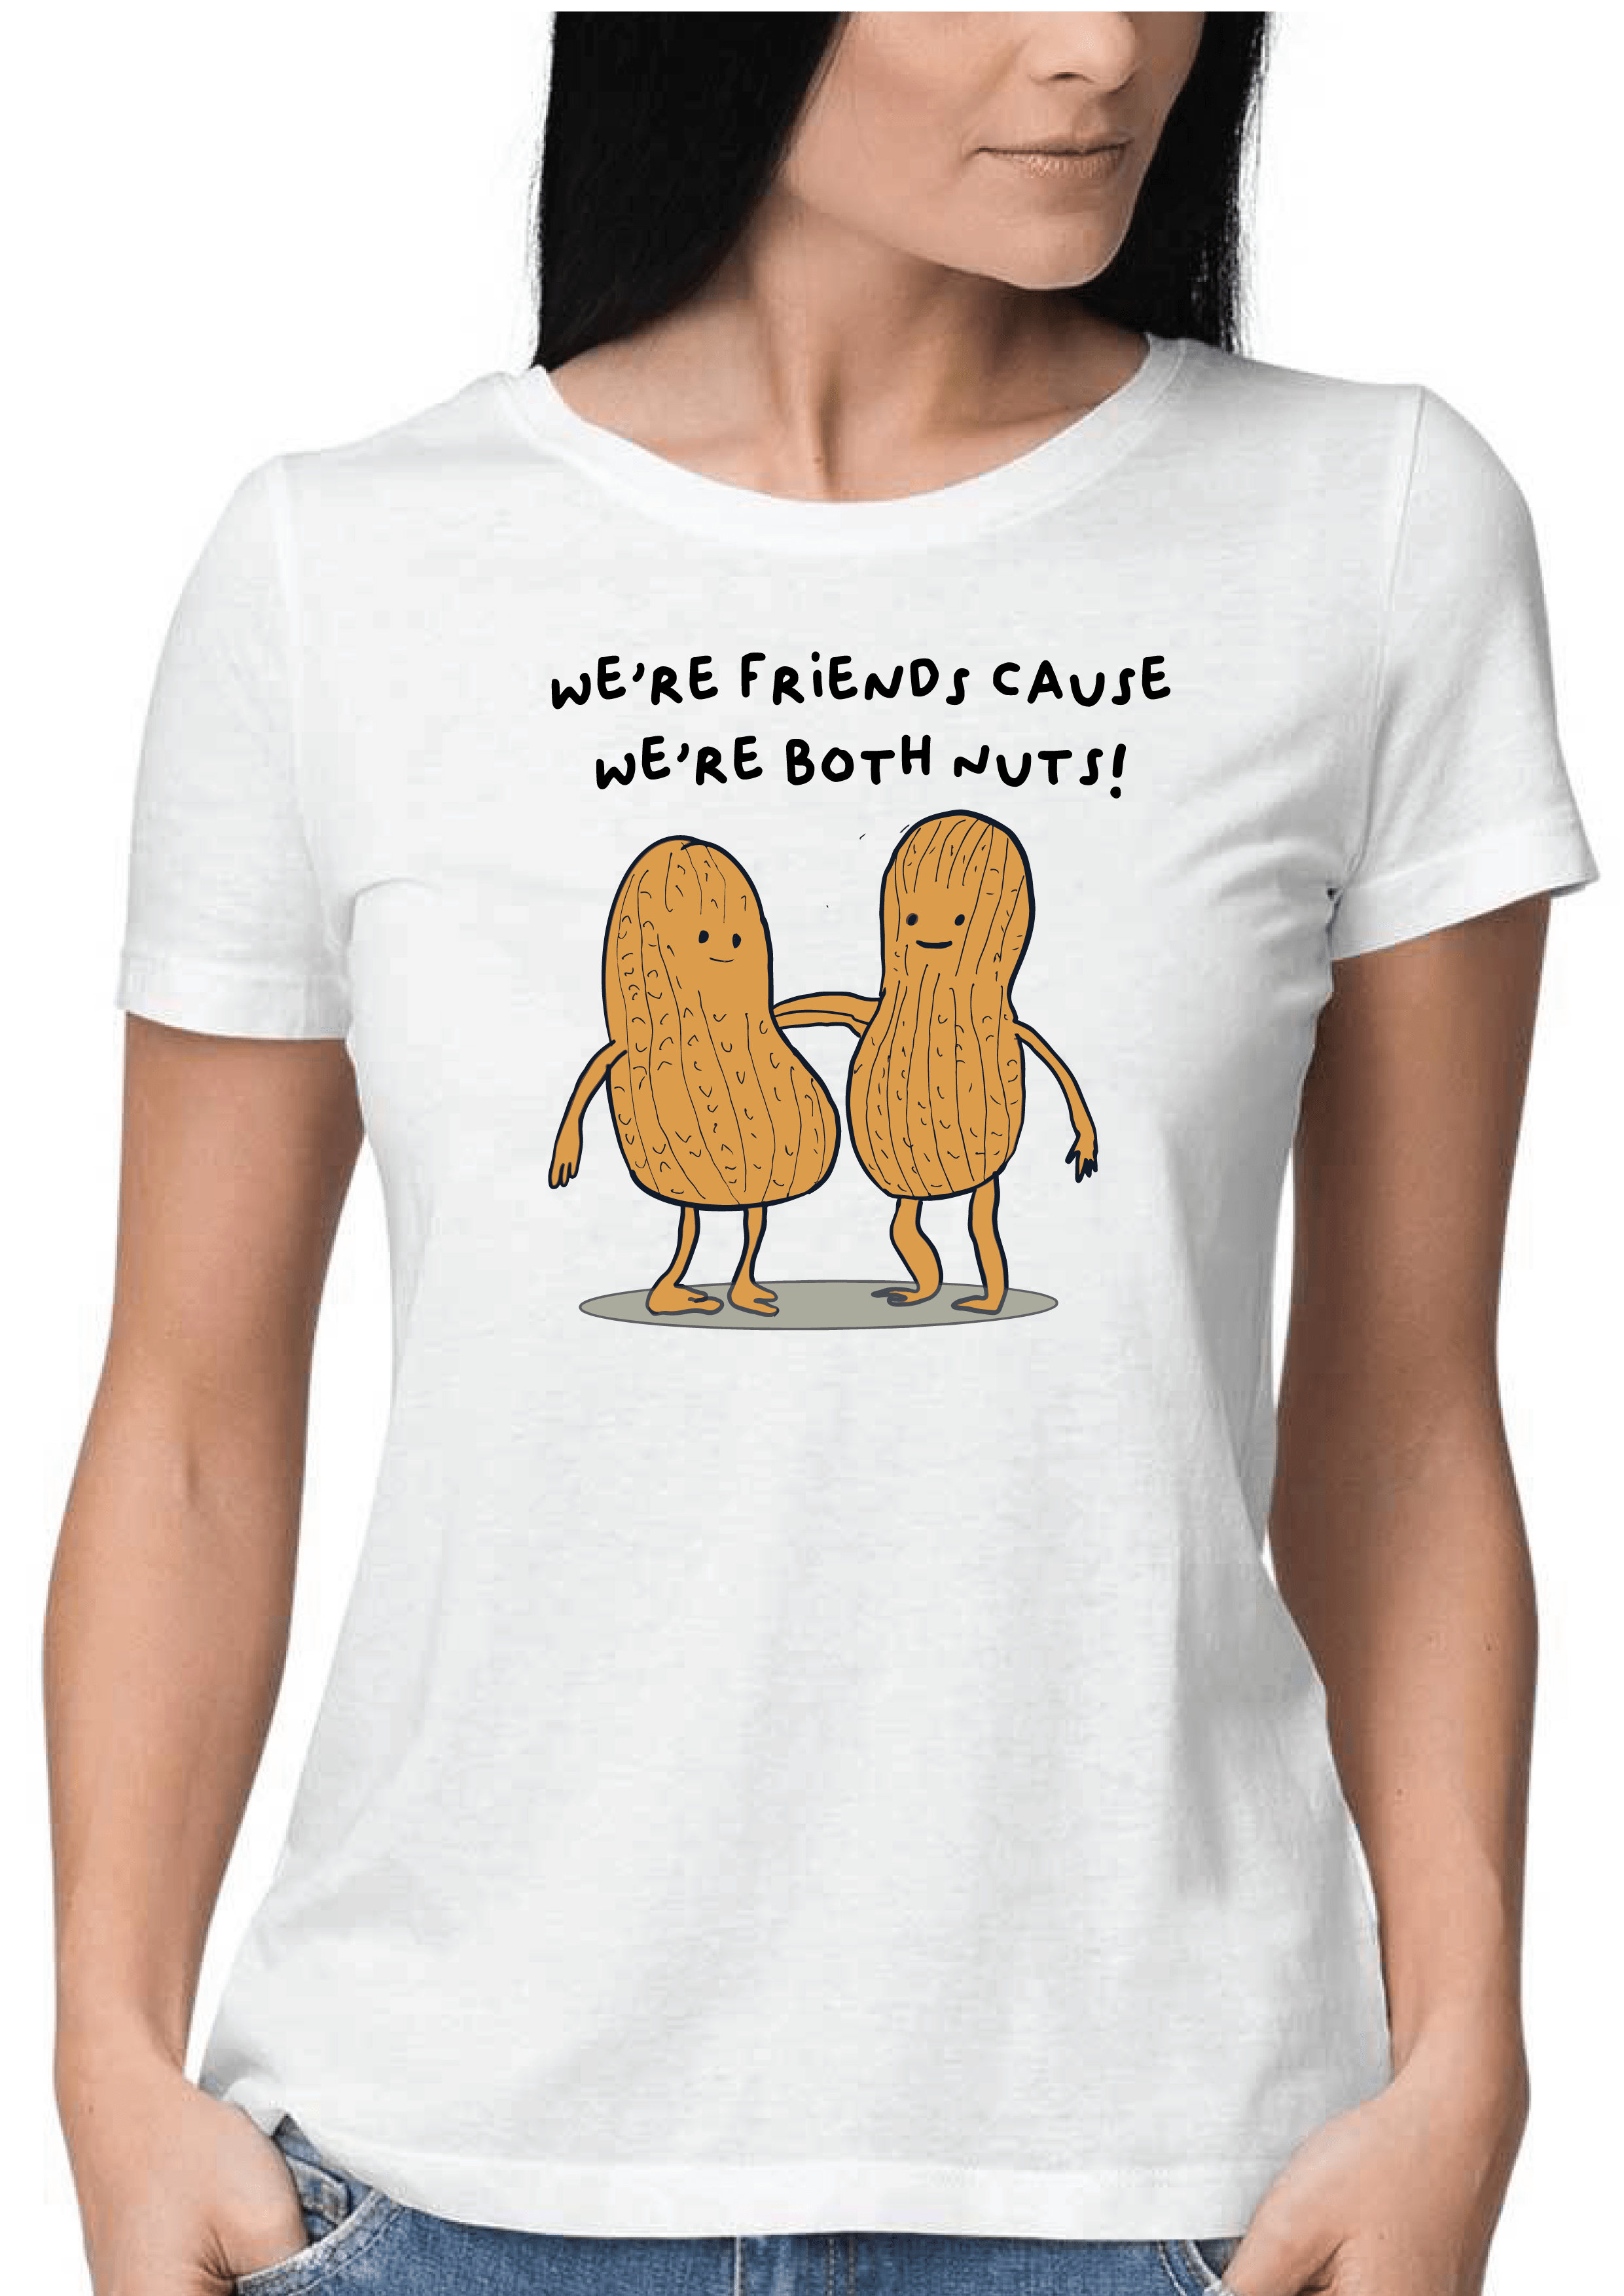 We're Friends Cause We're Both Nuts! T-shirt for Women Slider Thumbnail 1/2